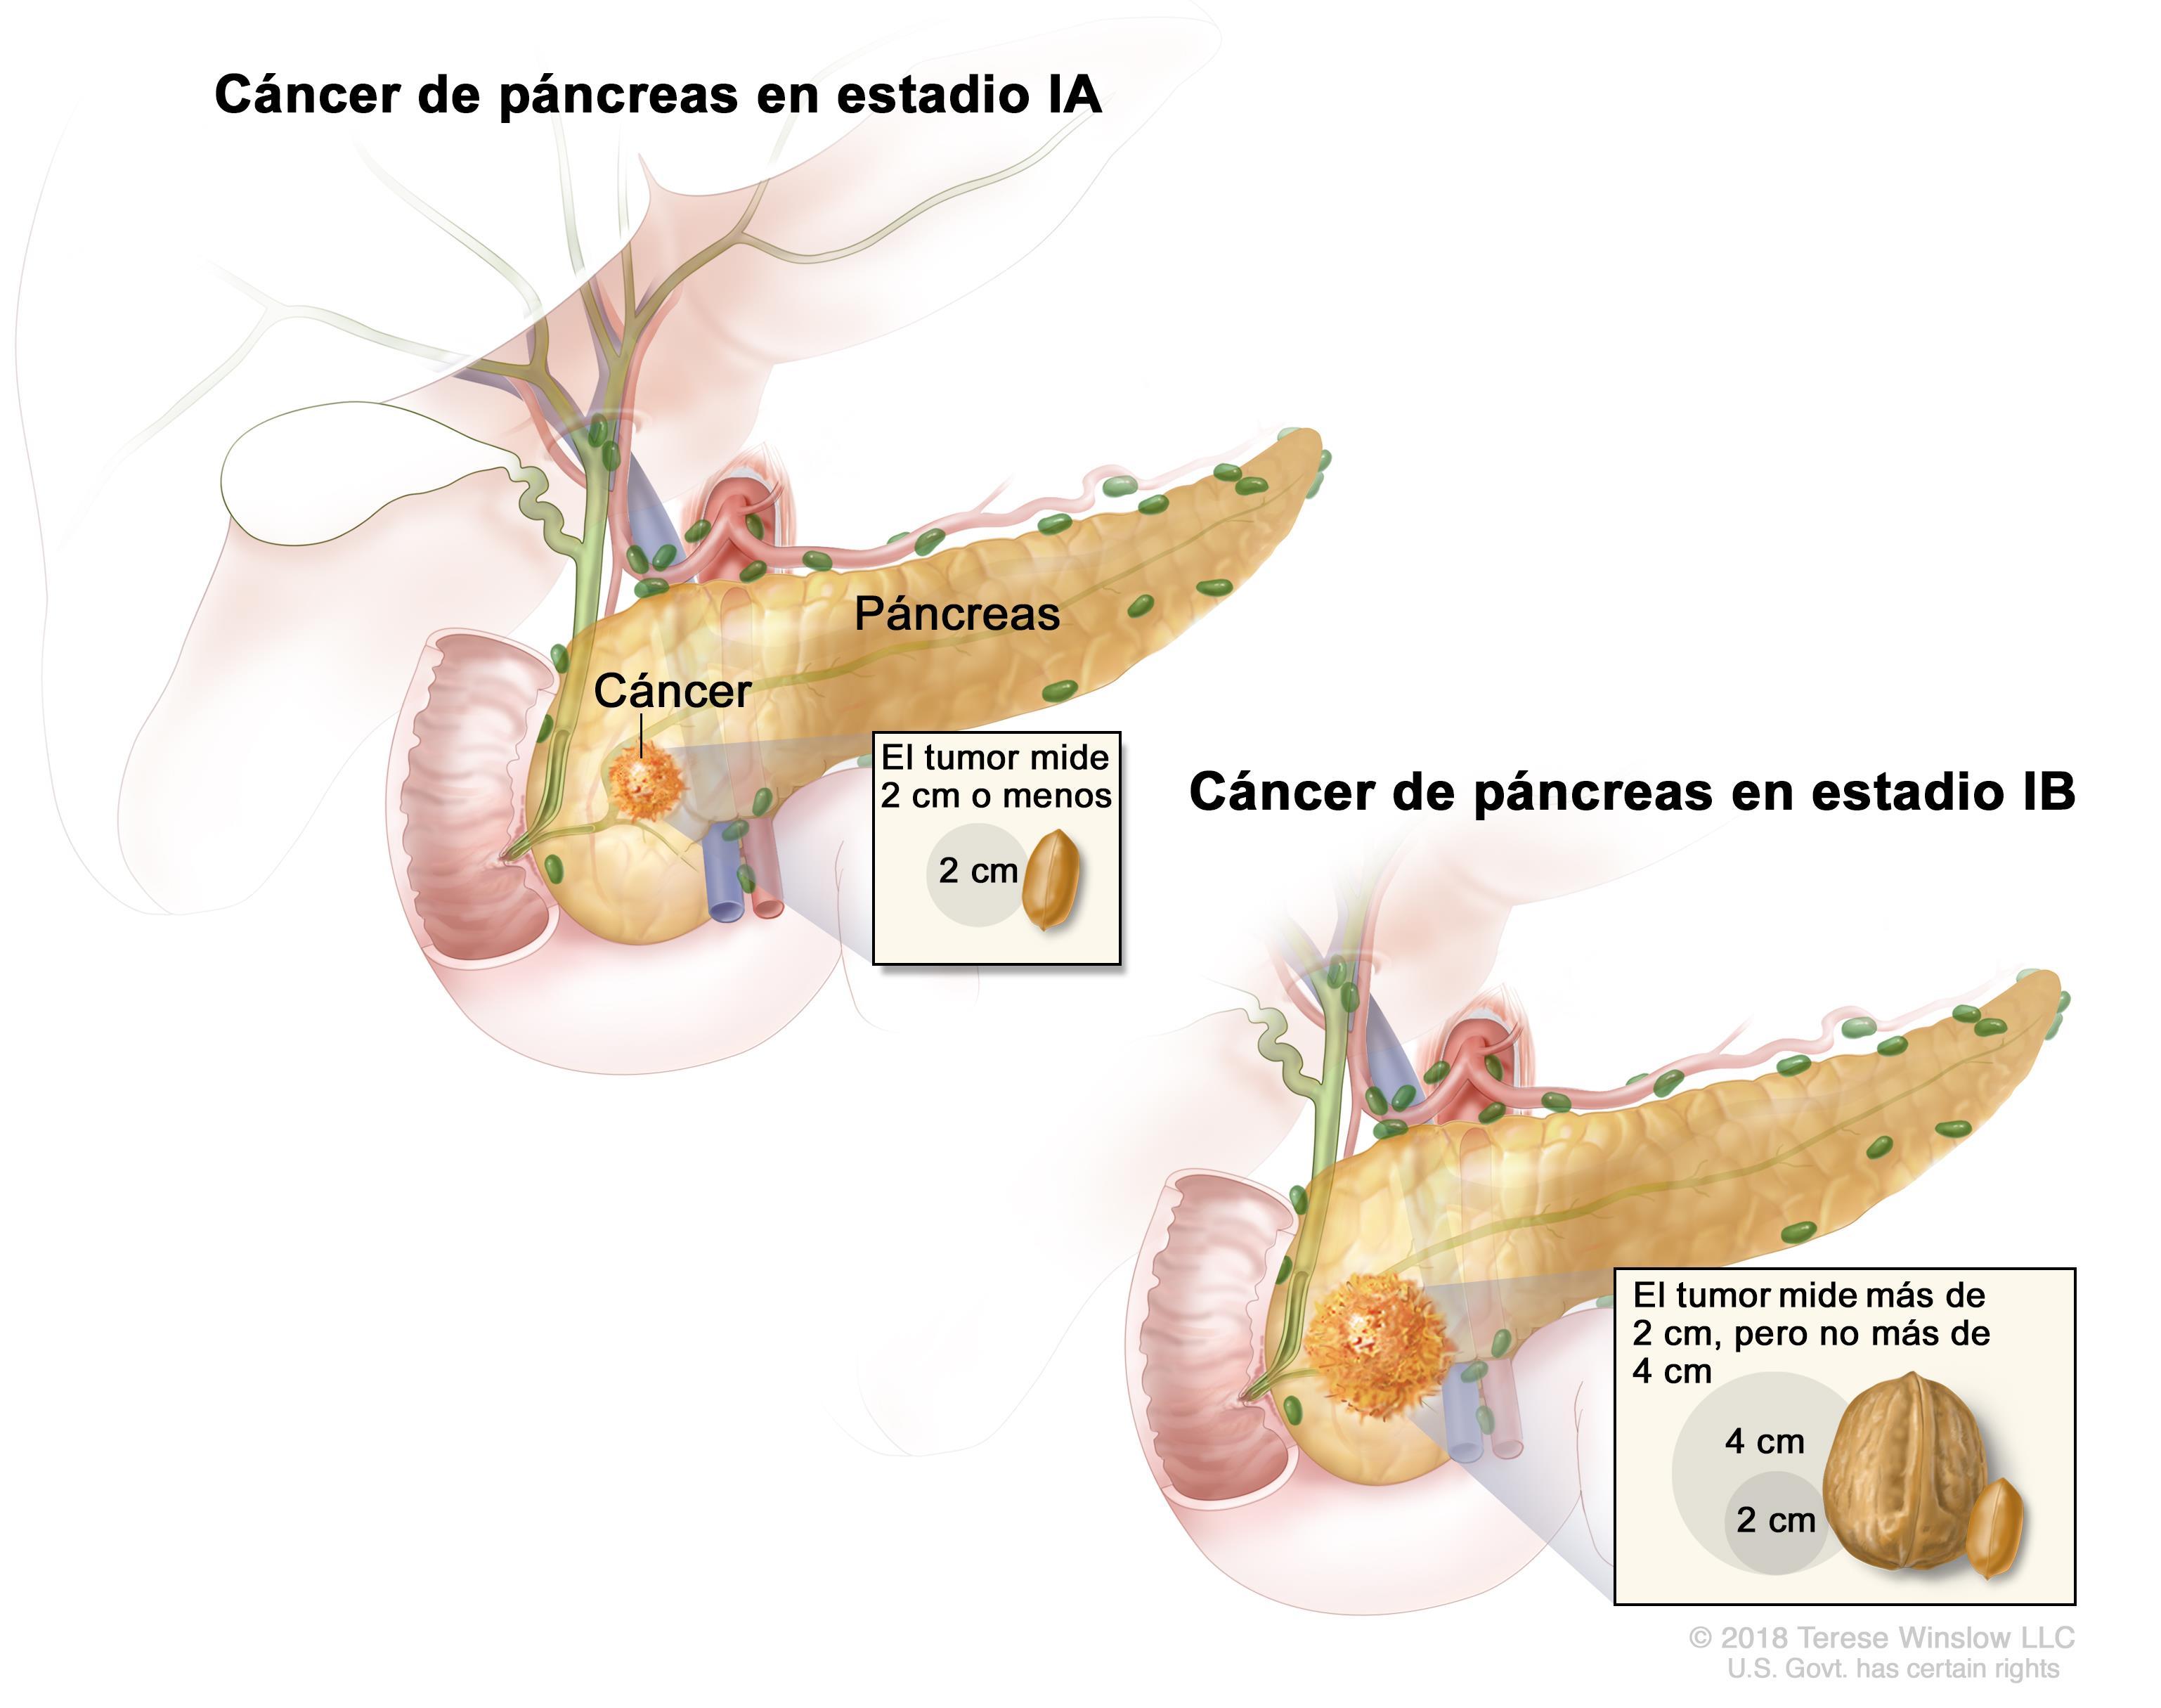 anthelmintic agents classification gastric cancer prognosis